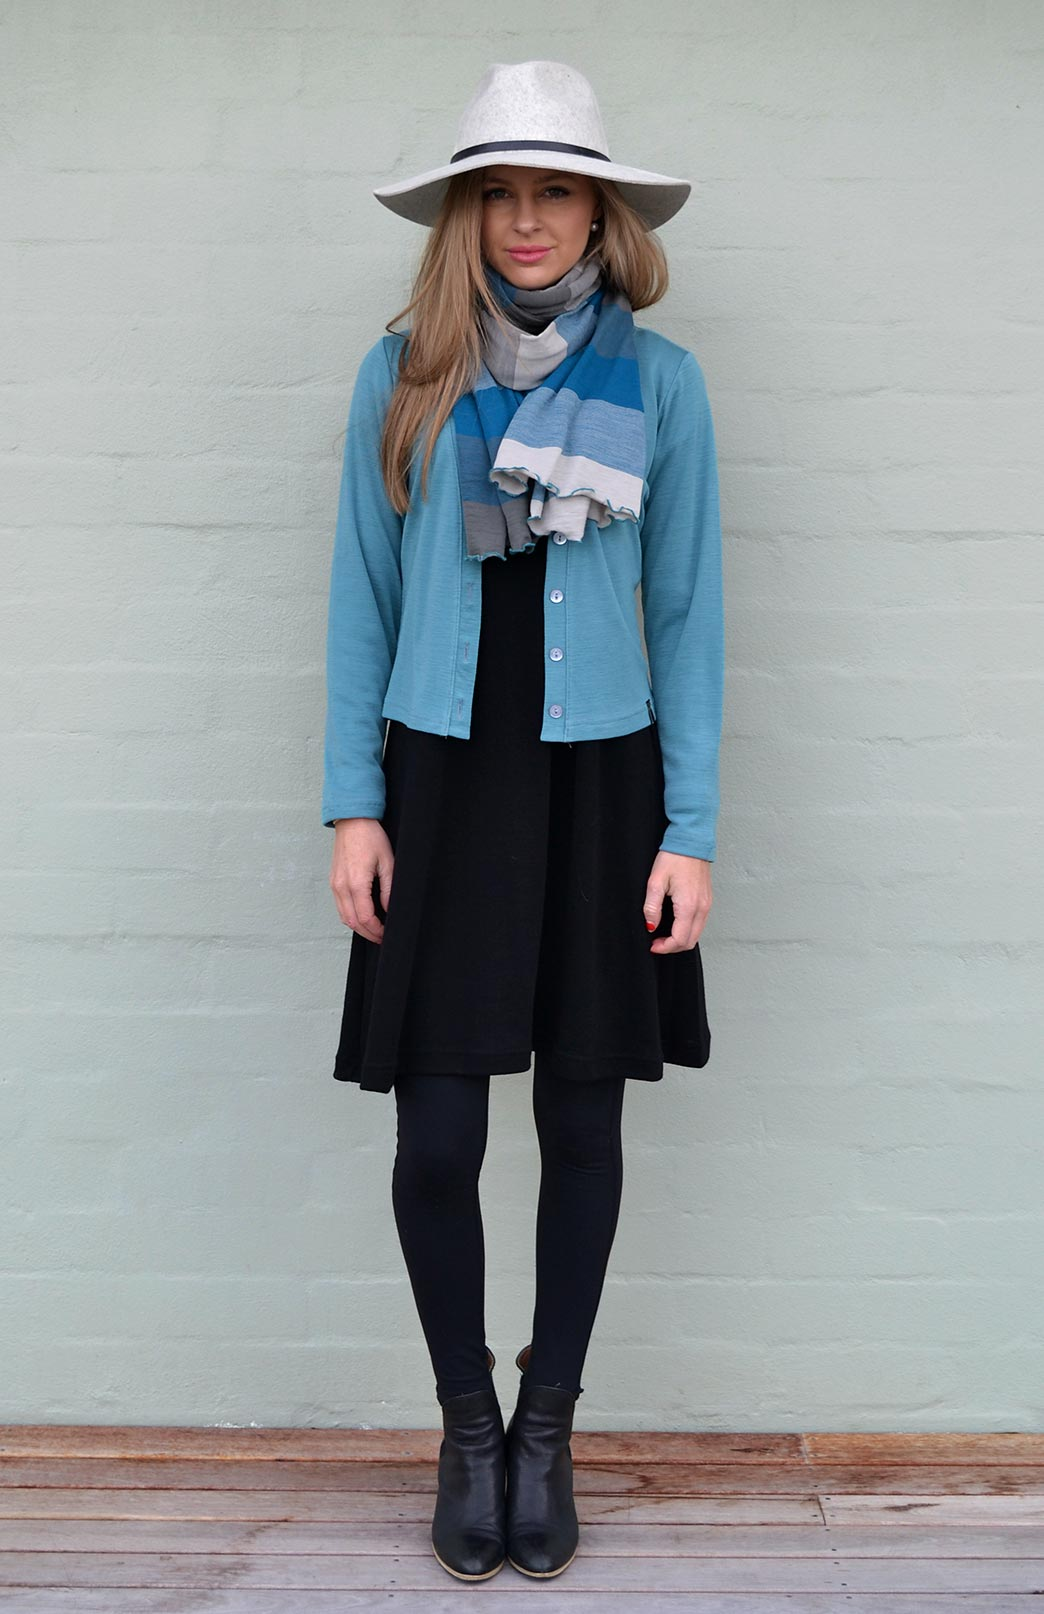 Our model wearing the Smitten Scarf in Teal Multi